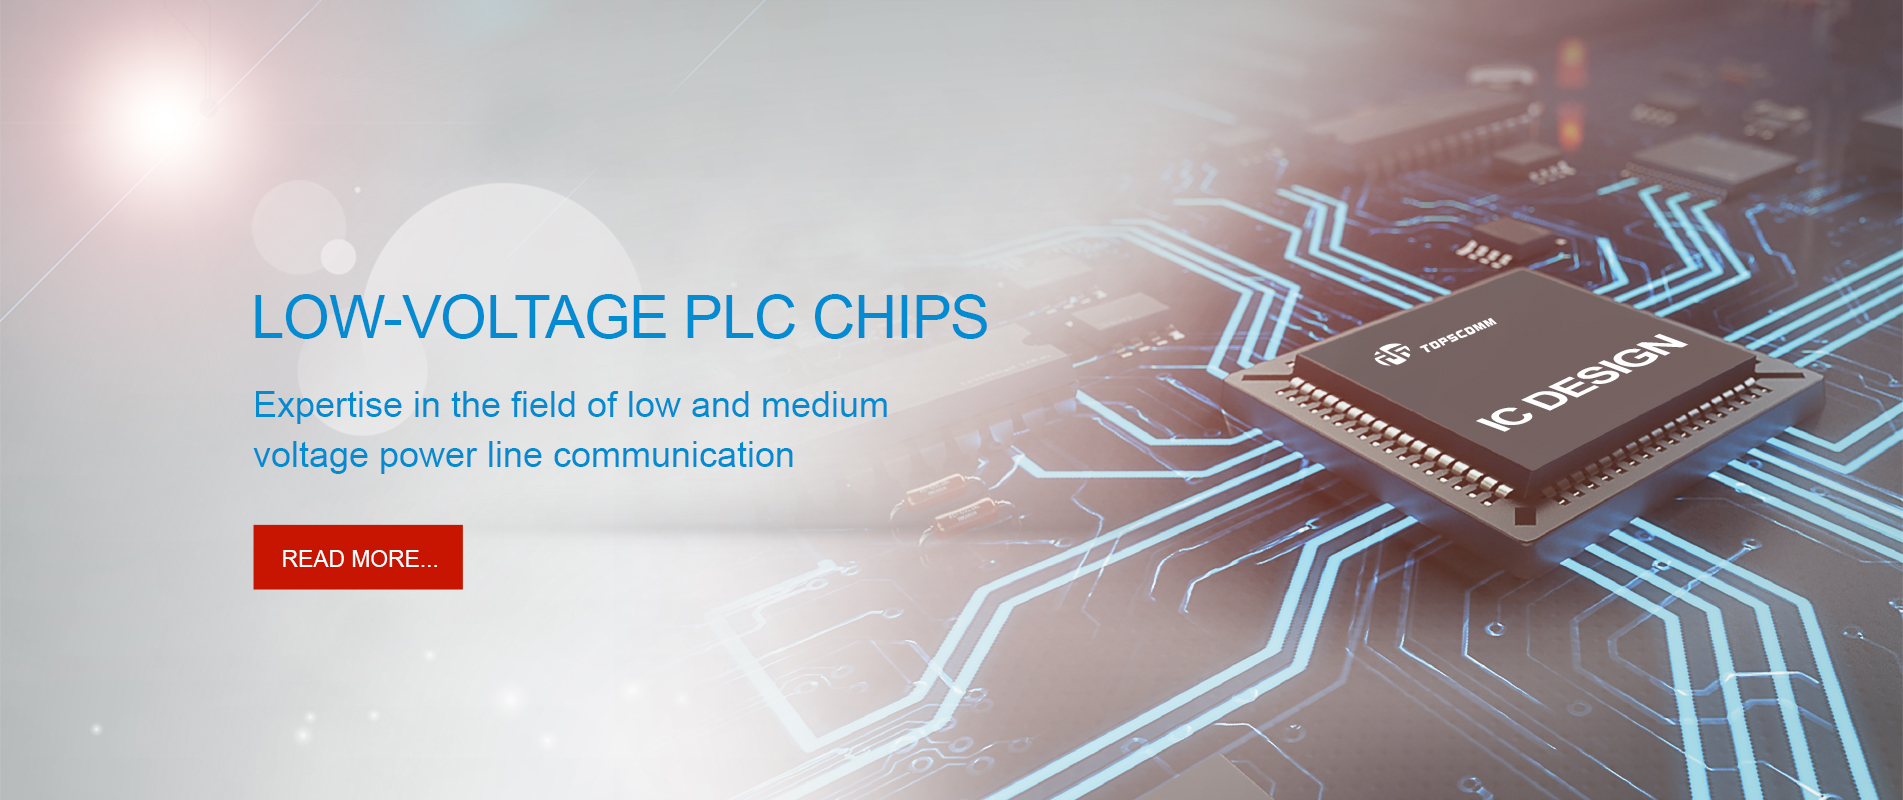 Low Voltage PLC Chips